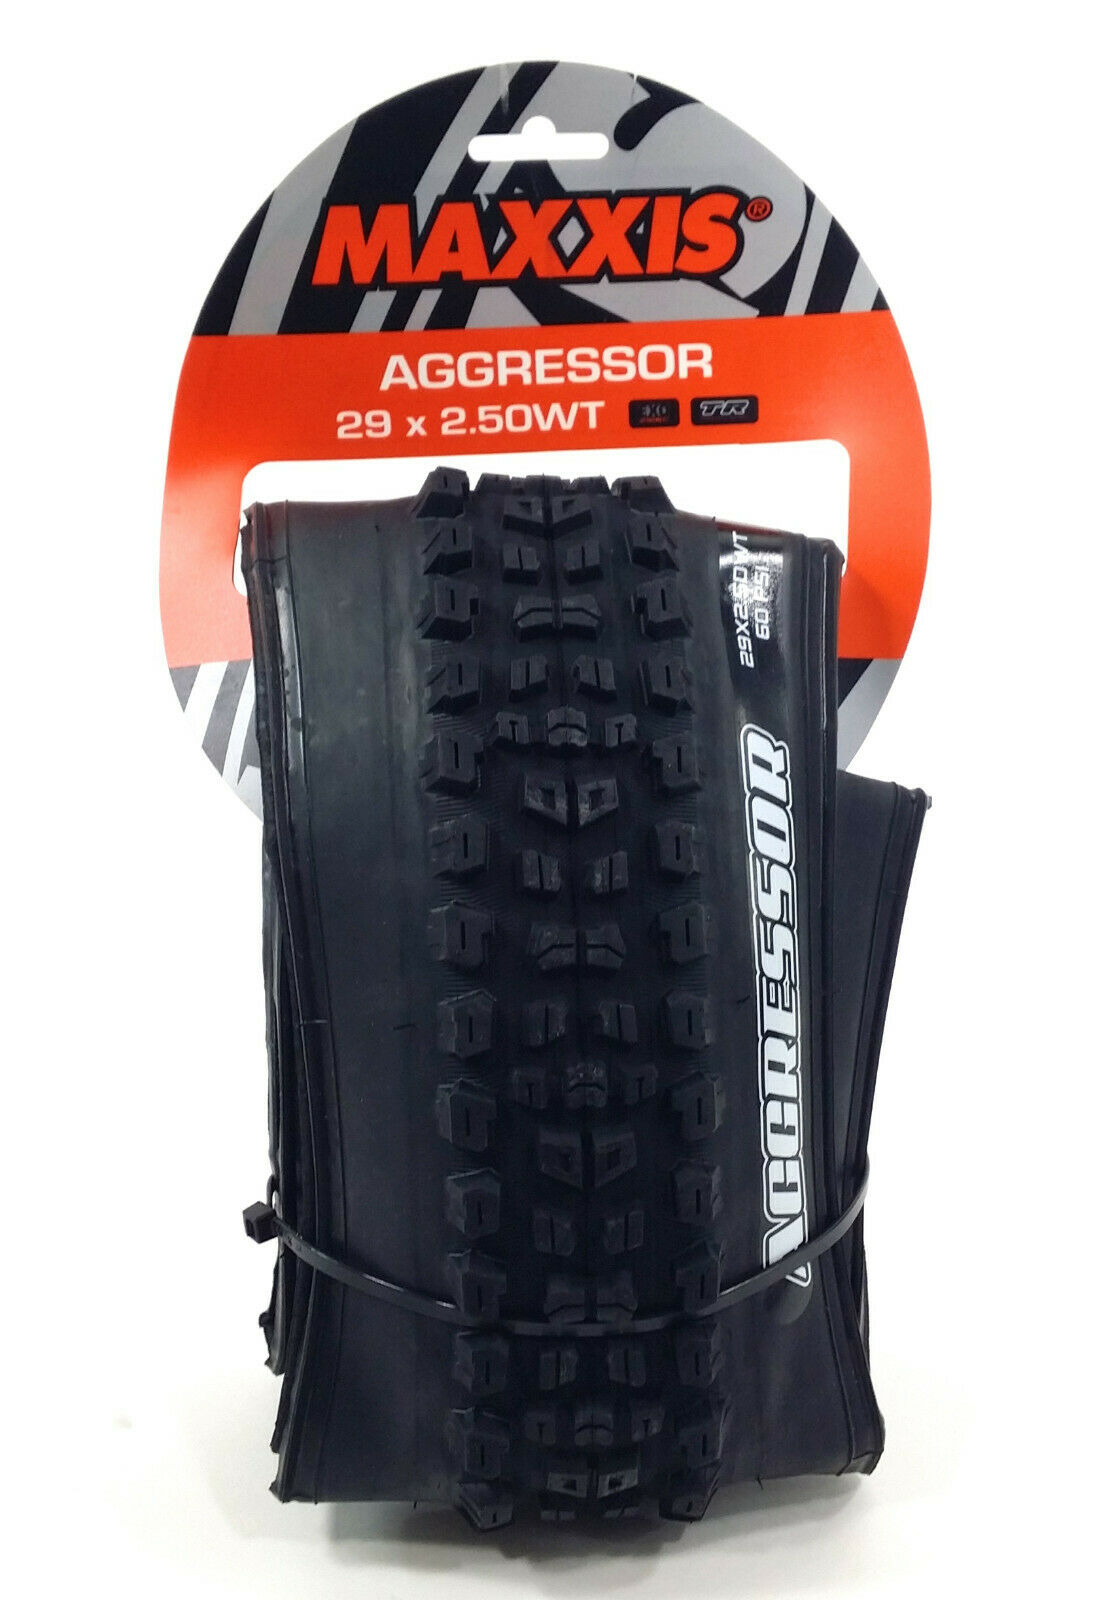 Maxxis Aggressor DC EXO TR 29x2.5 Tubeless Mountain  Bike Tire  up to 70% off